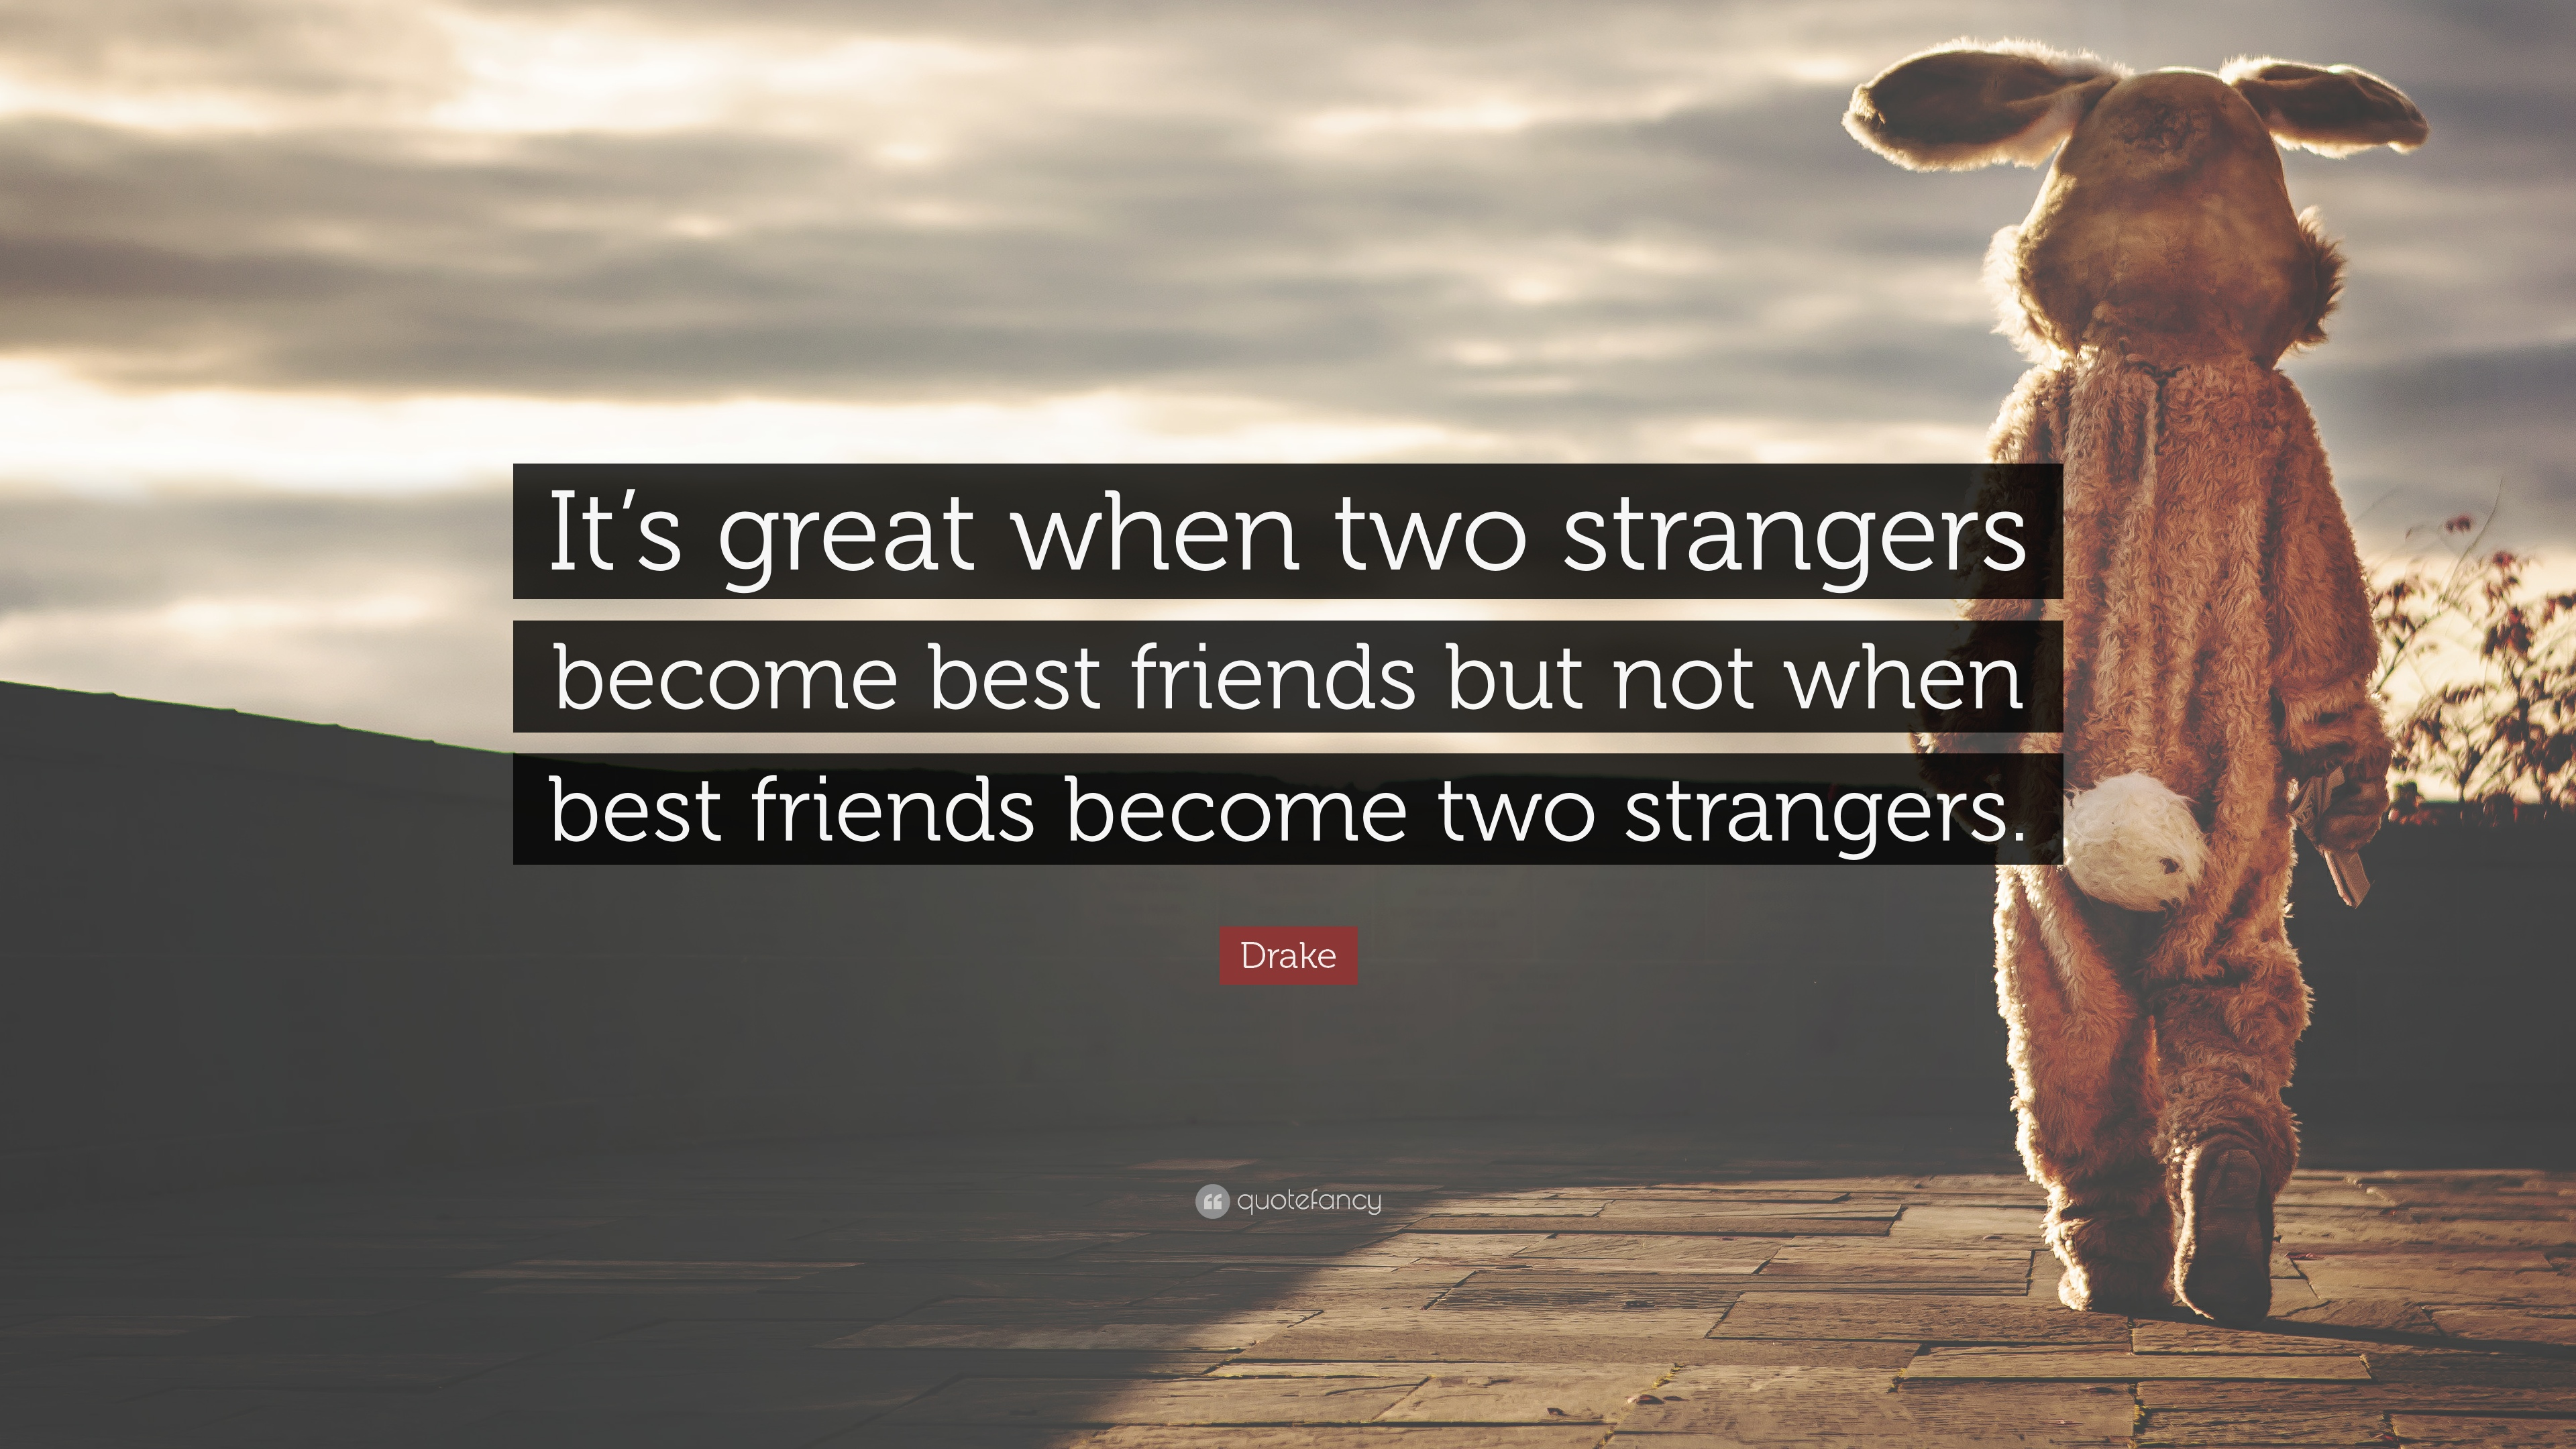 How to become a best friend